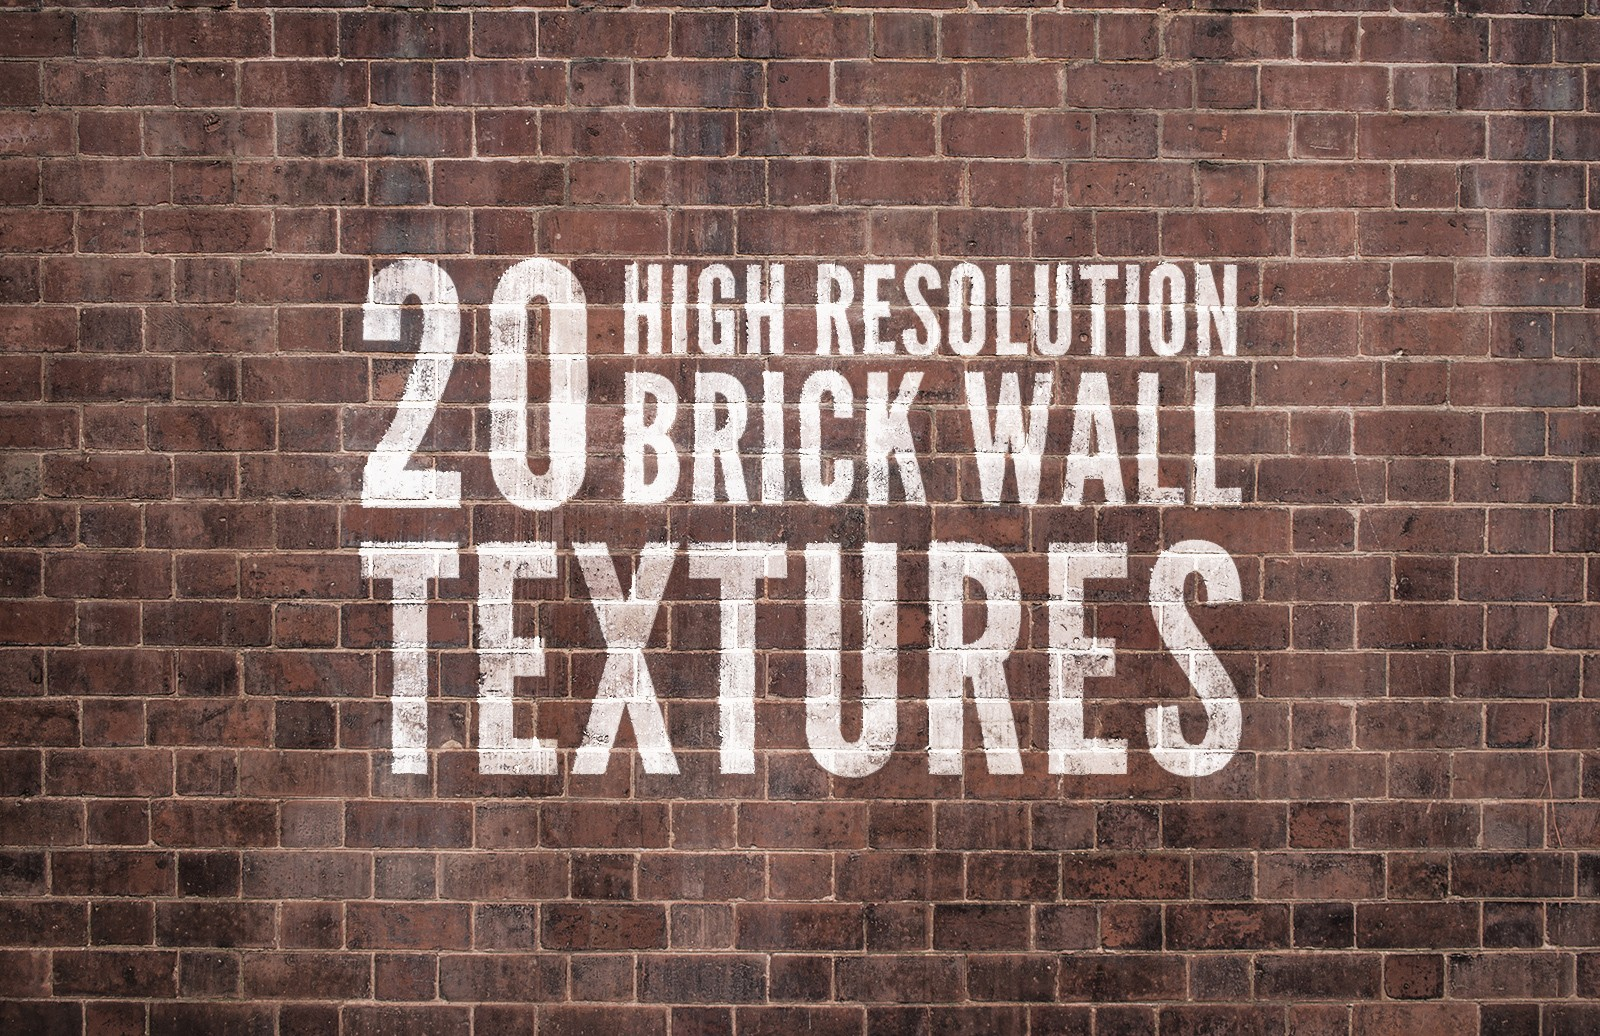 20 High Resolution Brick Wall Textures Medialoot